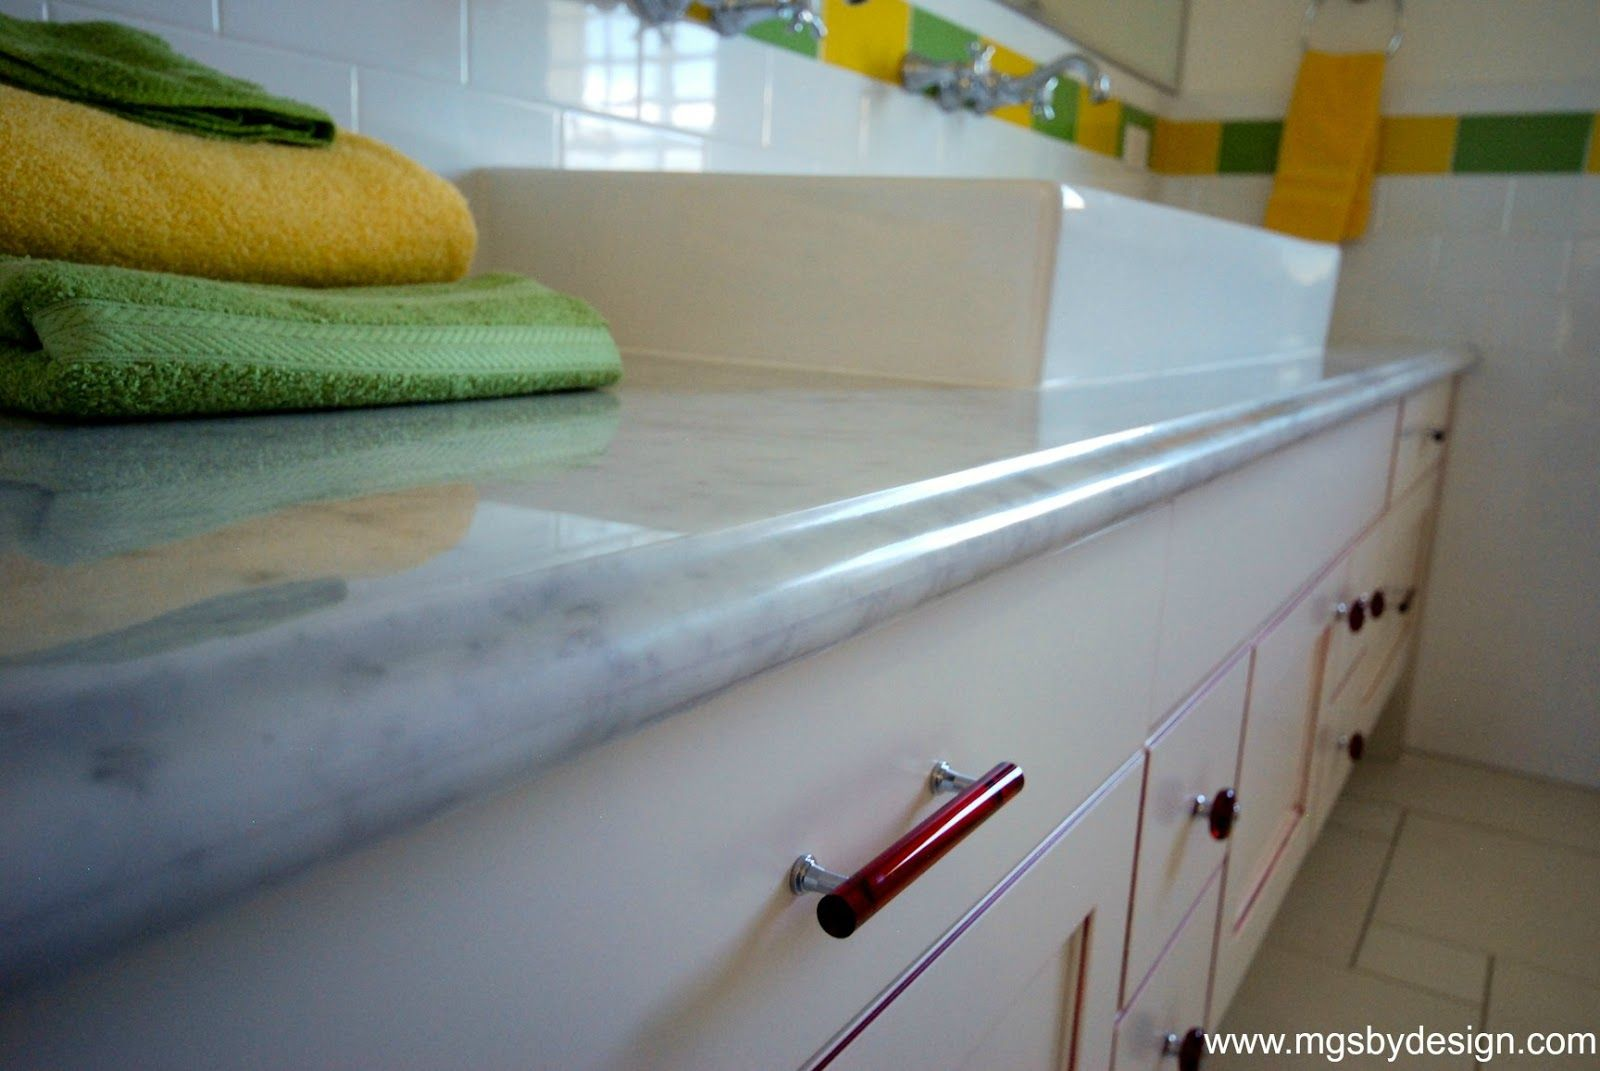 1 1 2 Ogee Bullnose Edge Detail On Marble Great Looking Upgraded Edge Beauty Is In The